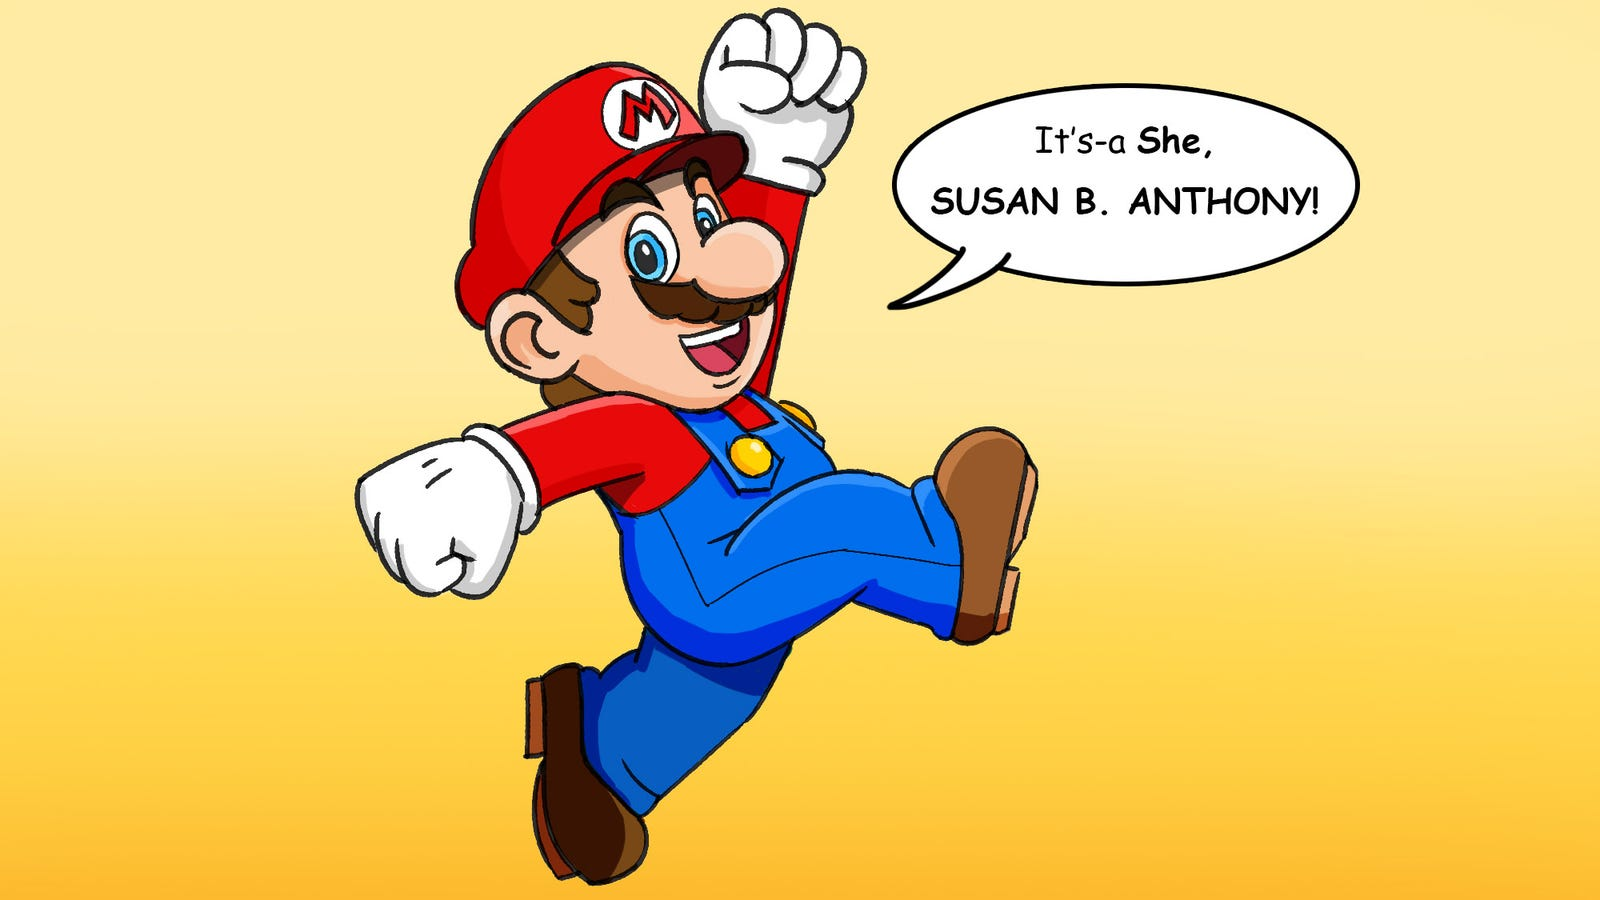 Feminism Win! This Artist Reimagined Mario As Saying 'It's-a She, Susan B. Anthony!'